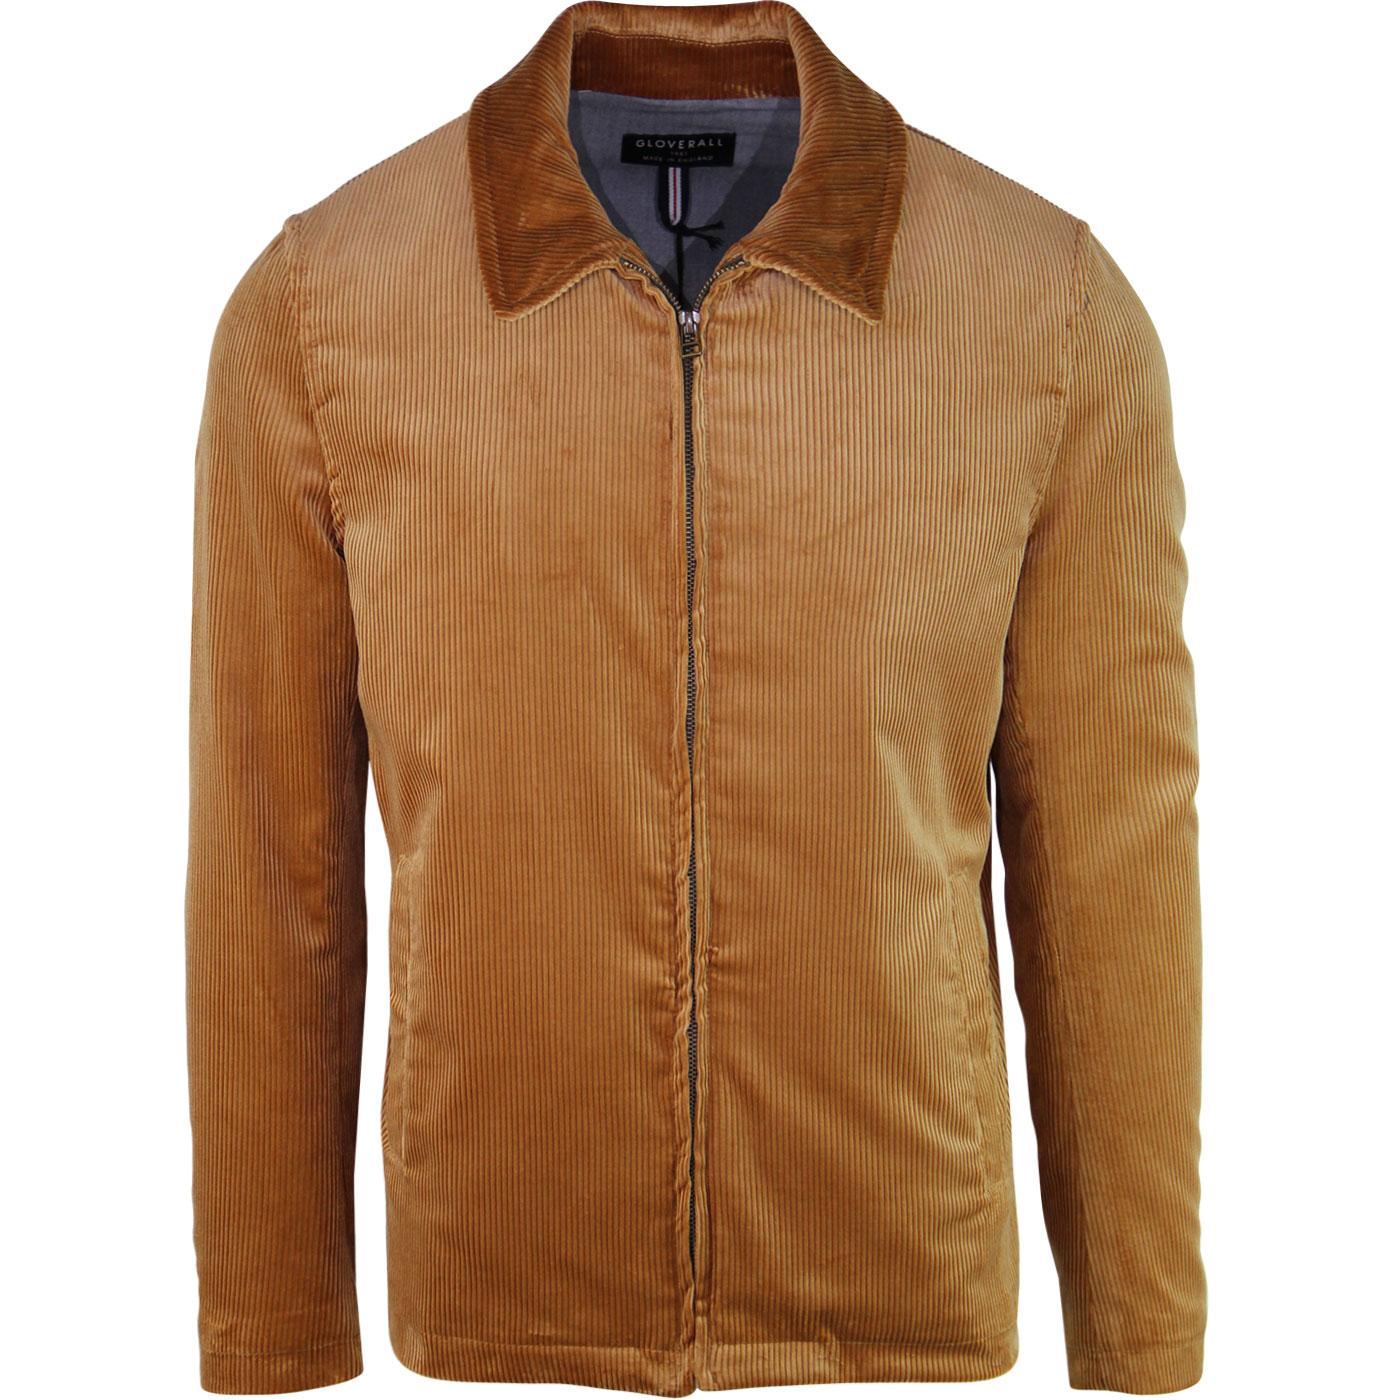 Musso GLOVERALL Retro Mod Cord Harrington (Camel)